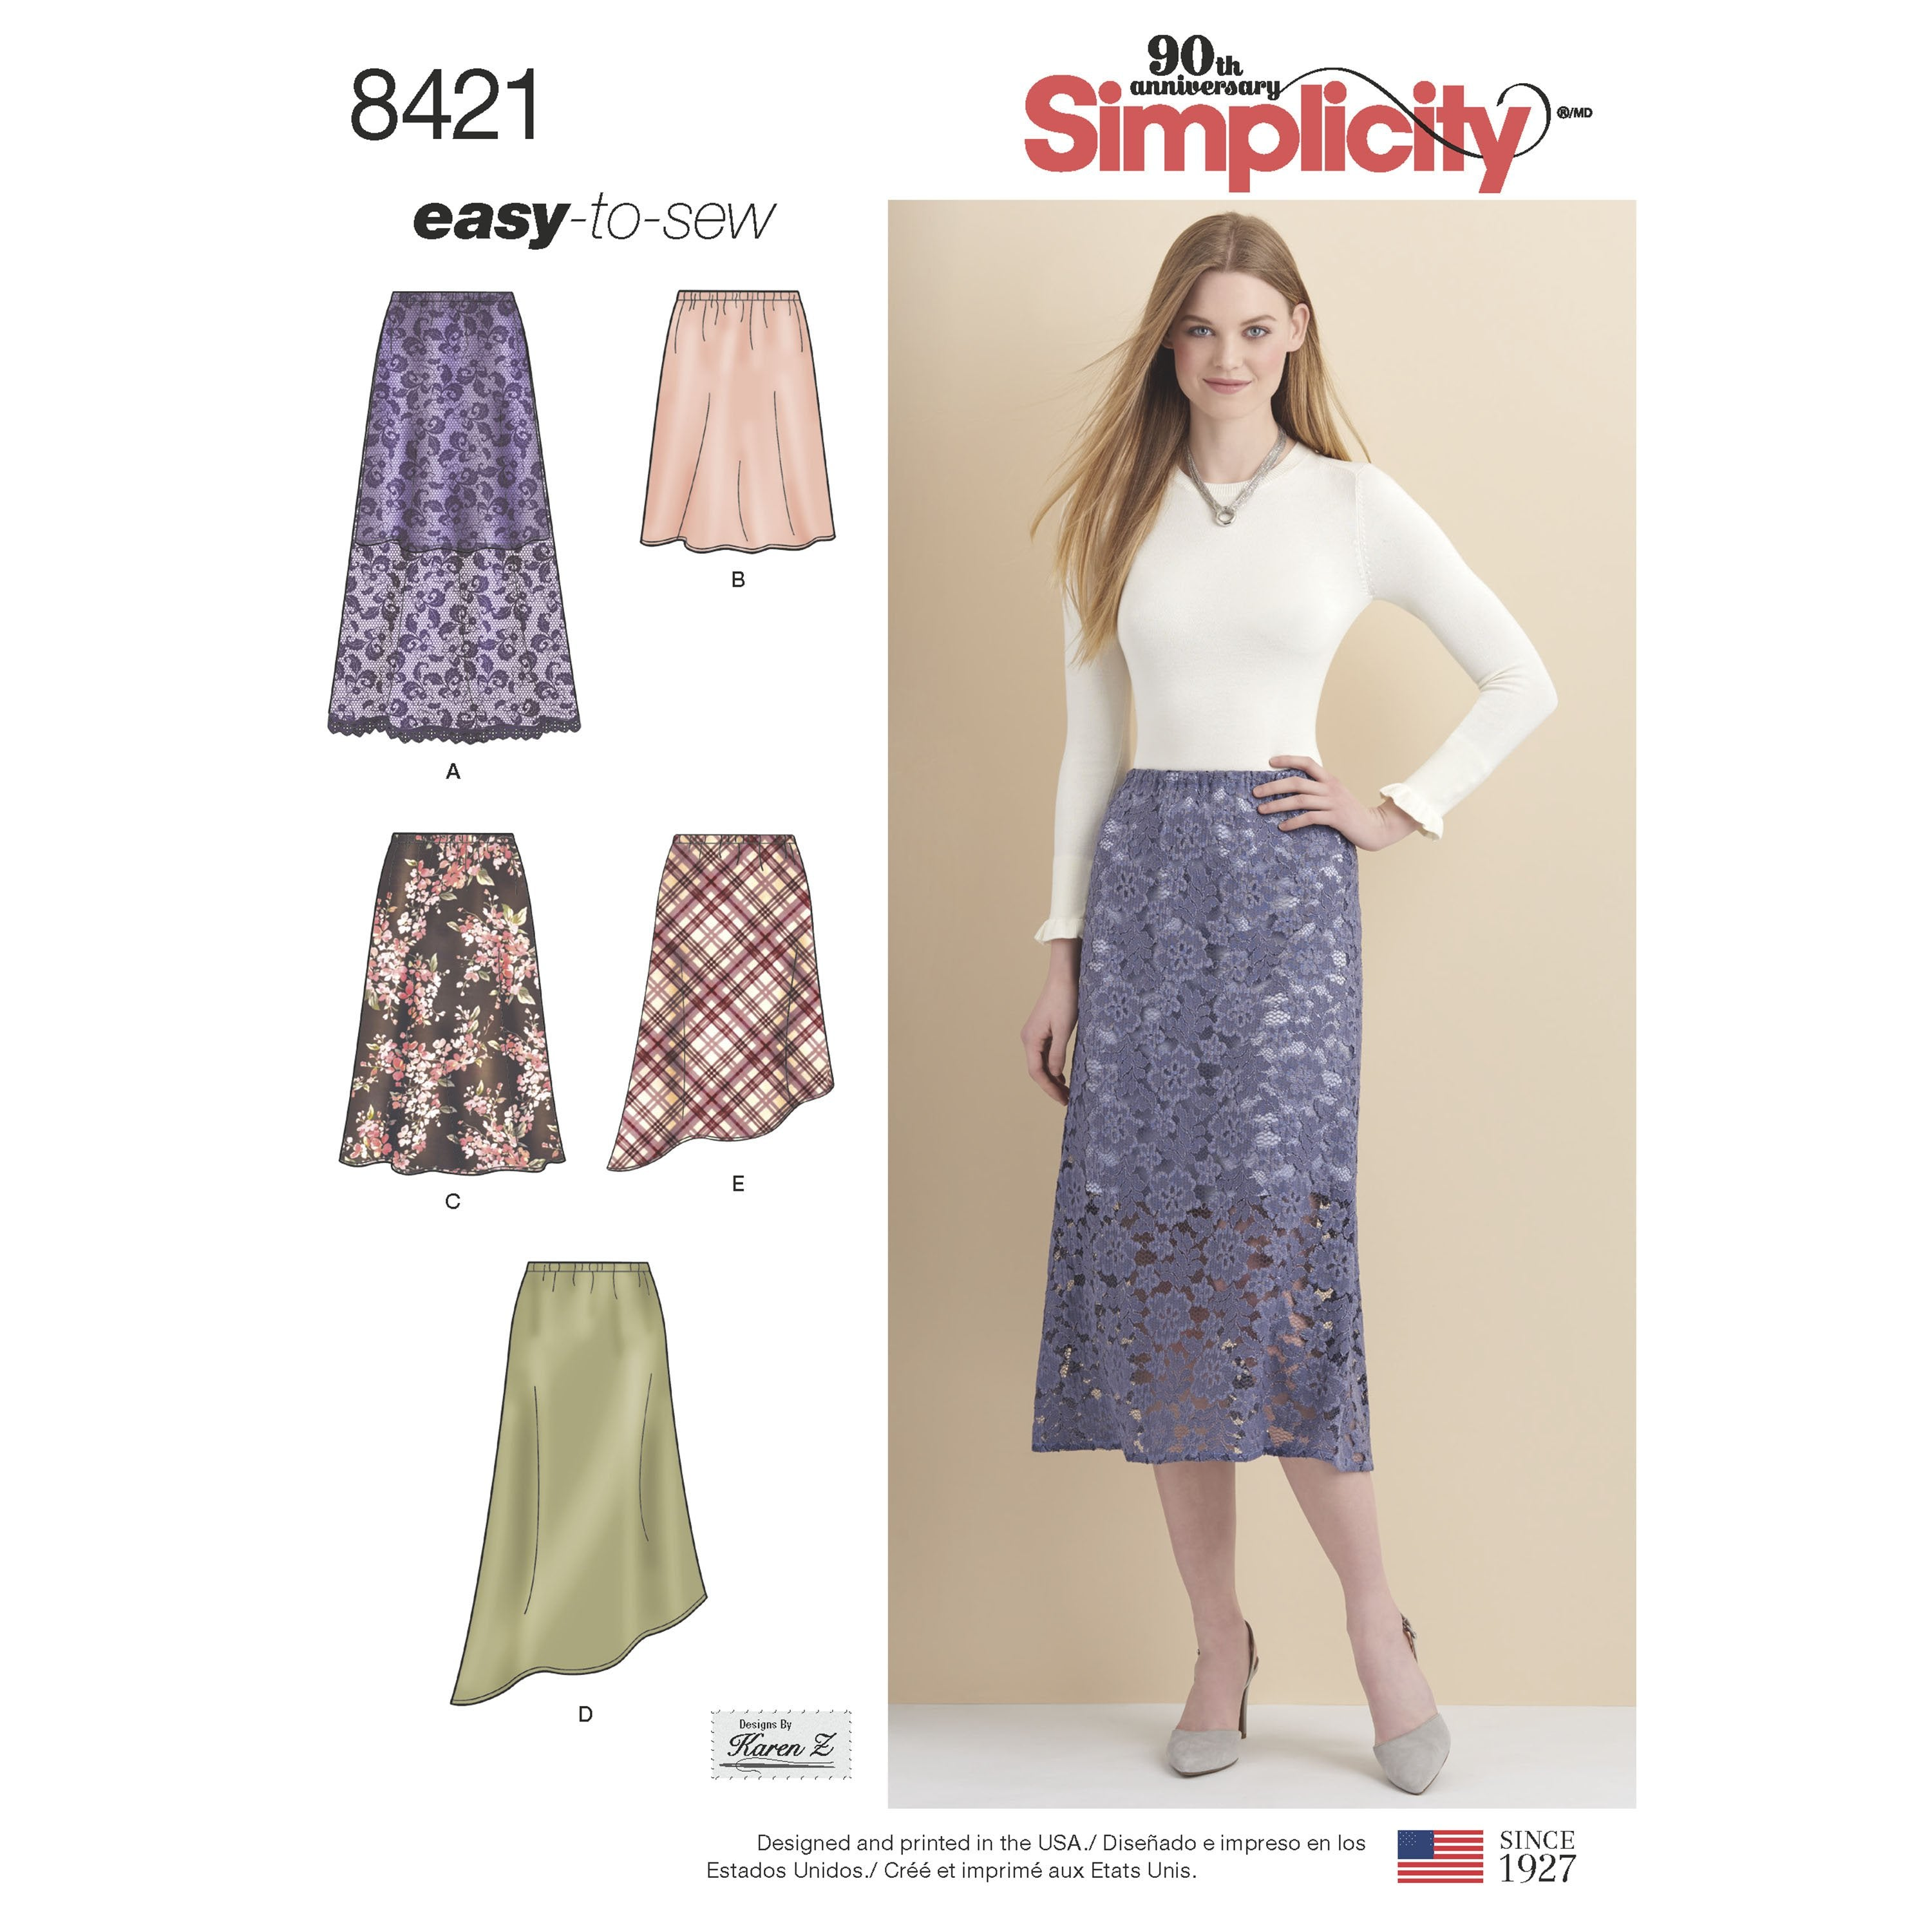 S8421 Skirts in Three lengths with Hem Variations